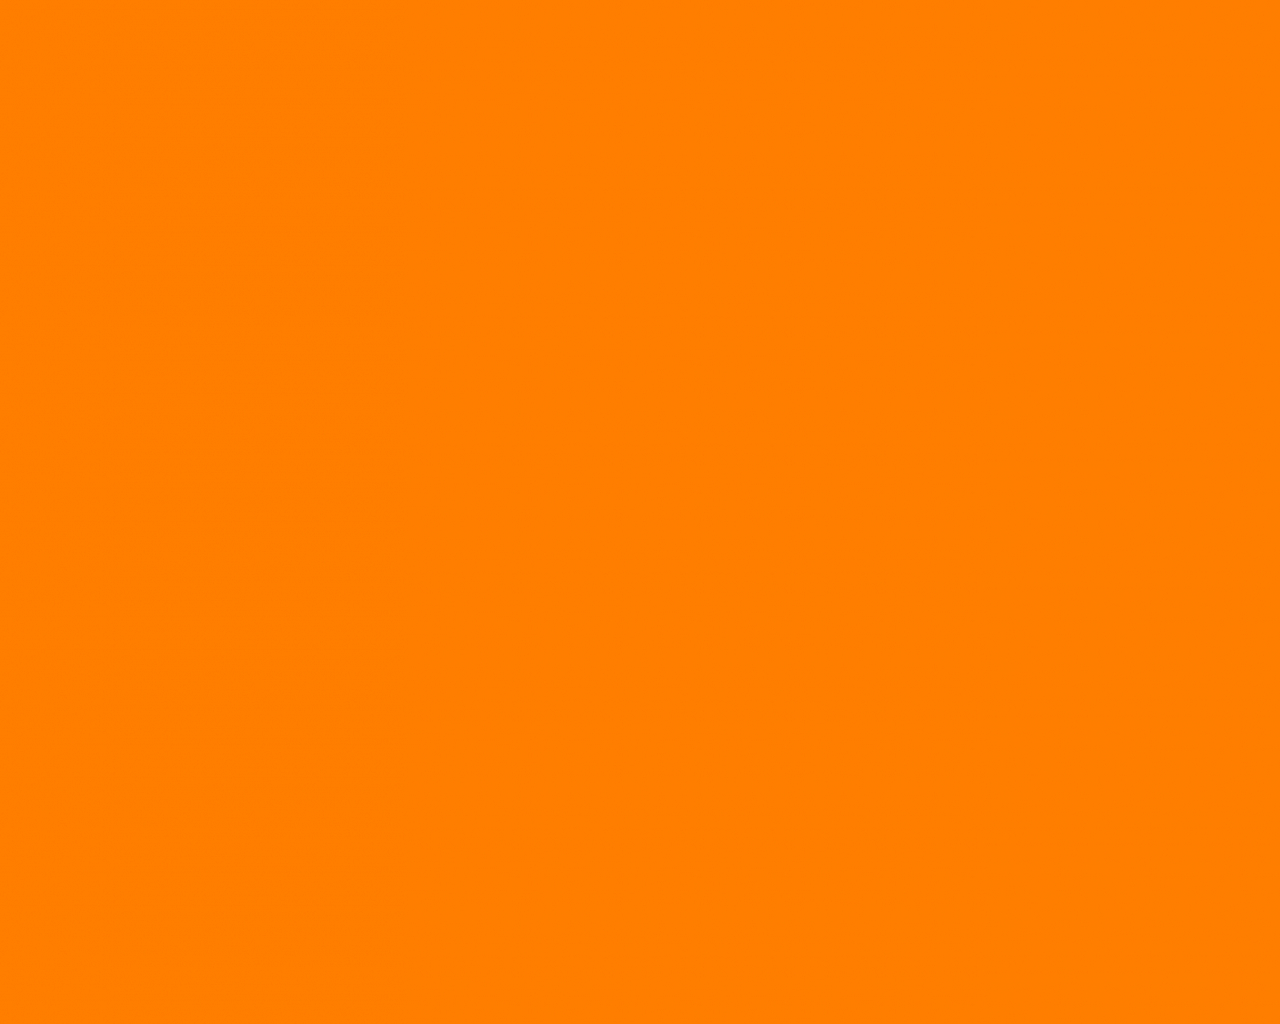 2880x1800px Solid Orange Wallpaper